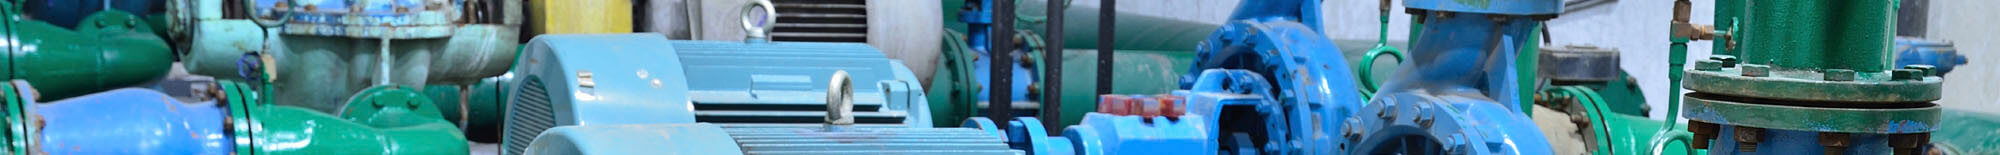 Sanitary Pumps | Industrial Pump Repair, Service, & Maintenance